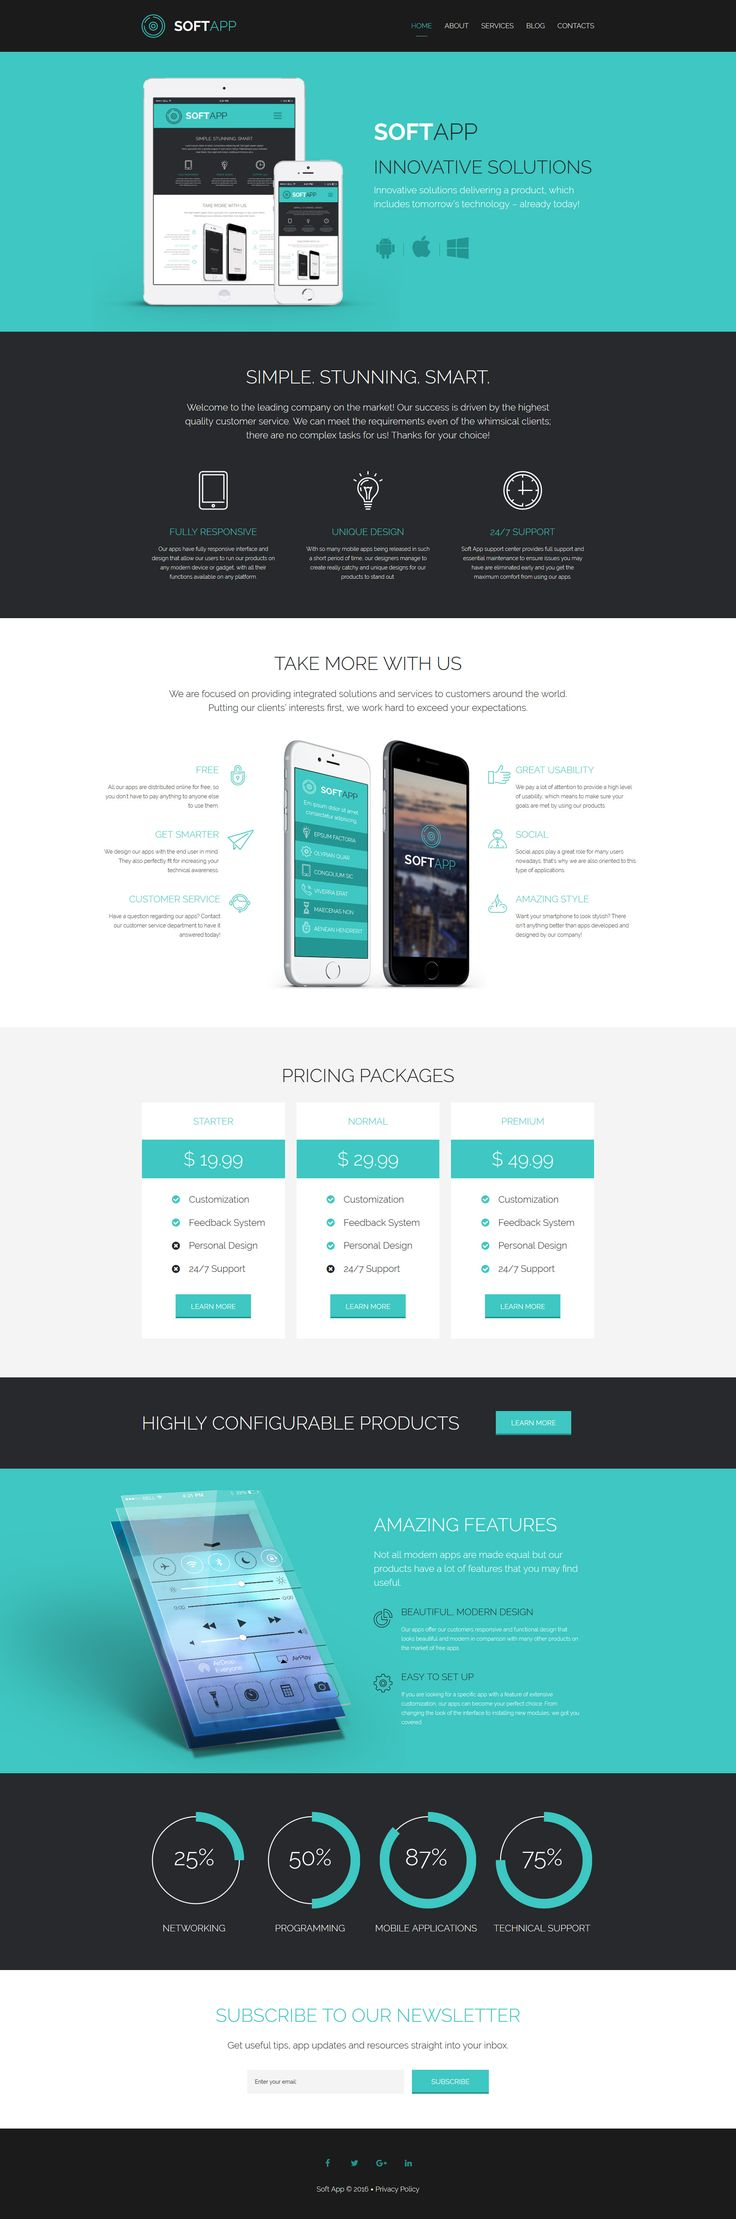 Software Responsive Website Template - http://www.templatemonster.com/website-templates/software-responsive-website-template-59166.html